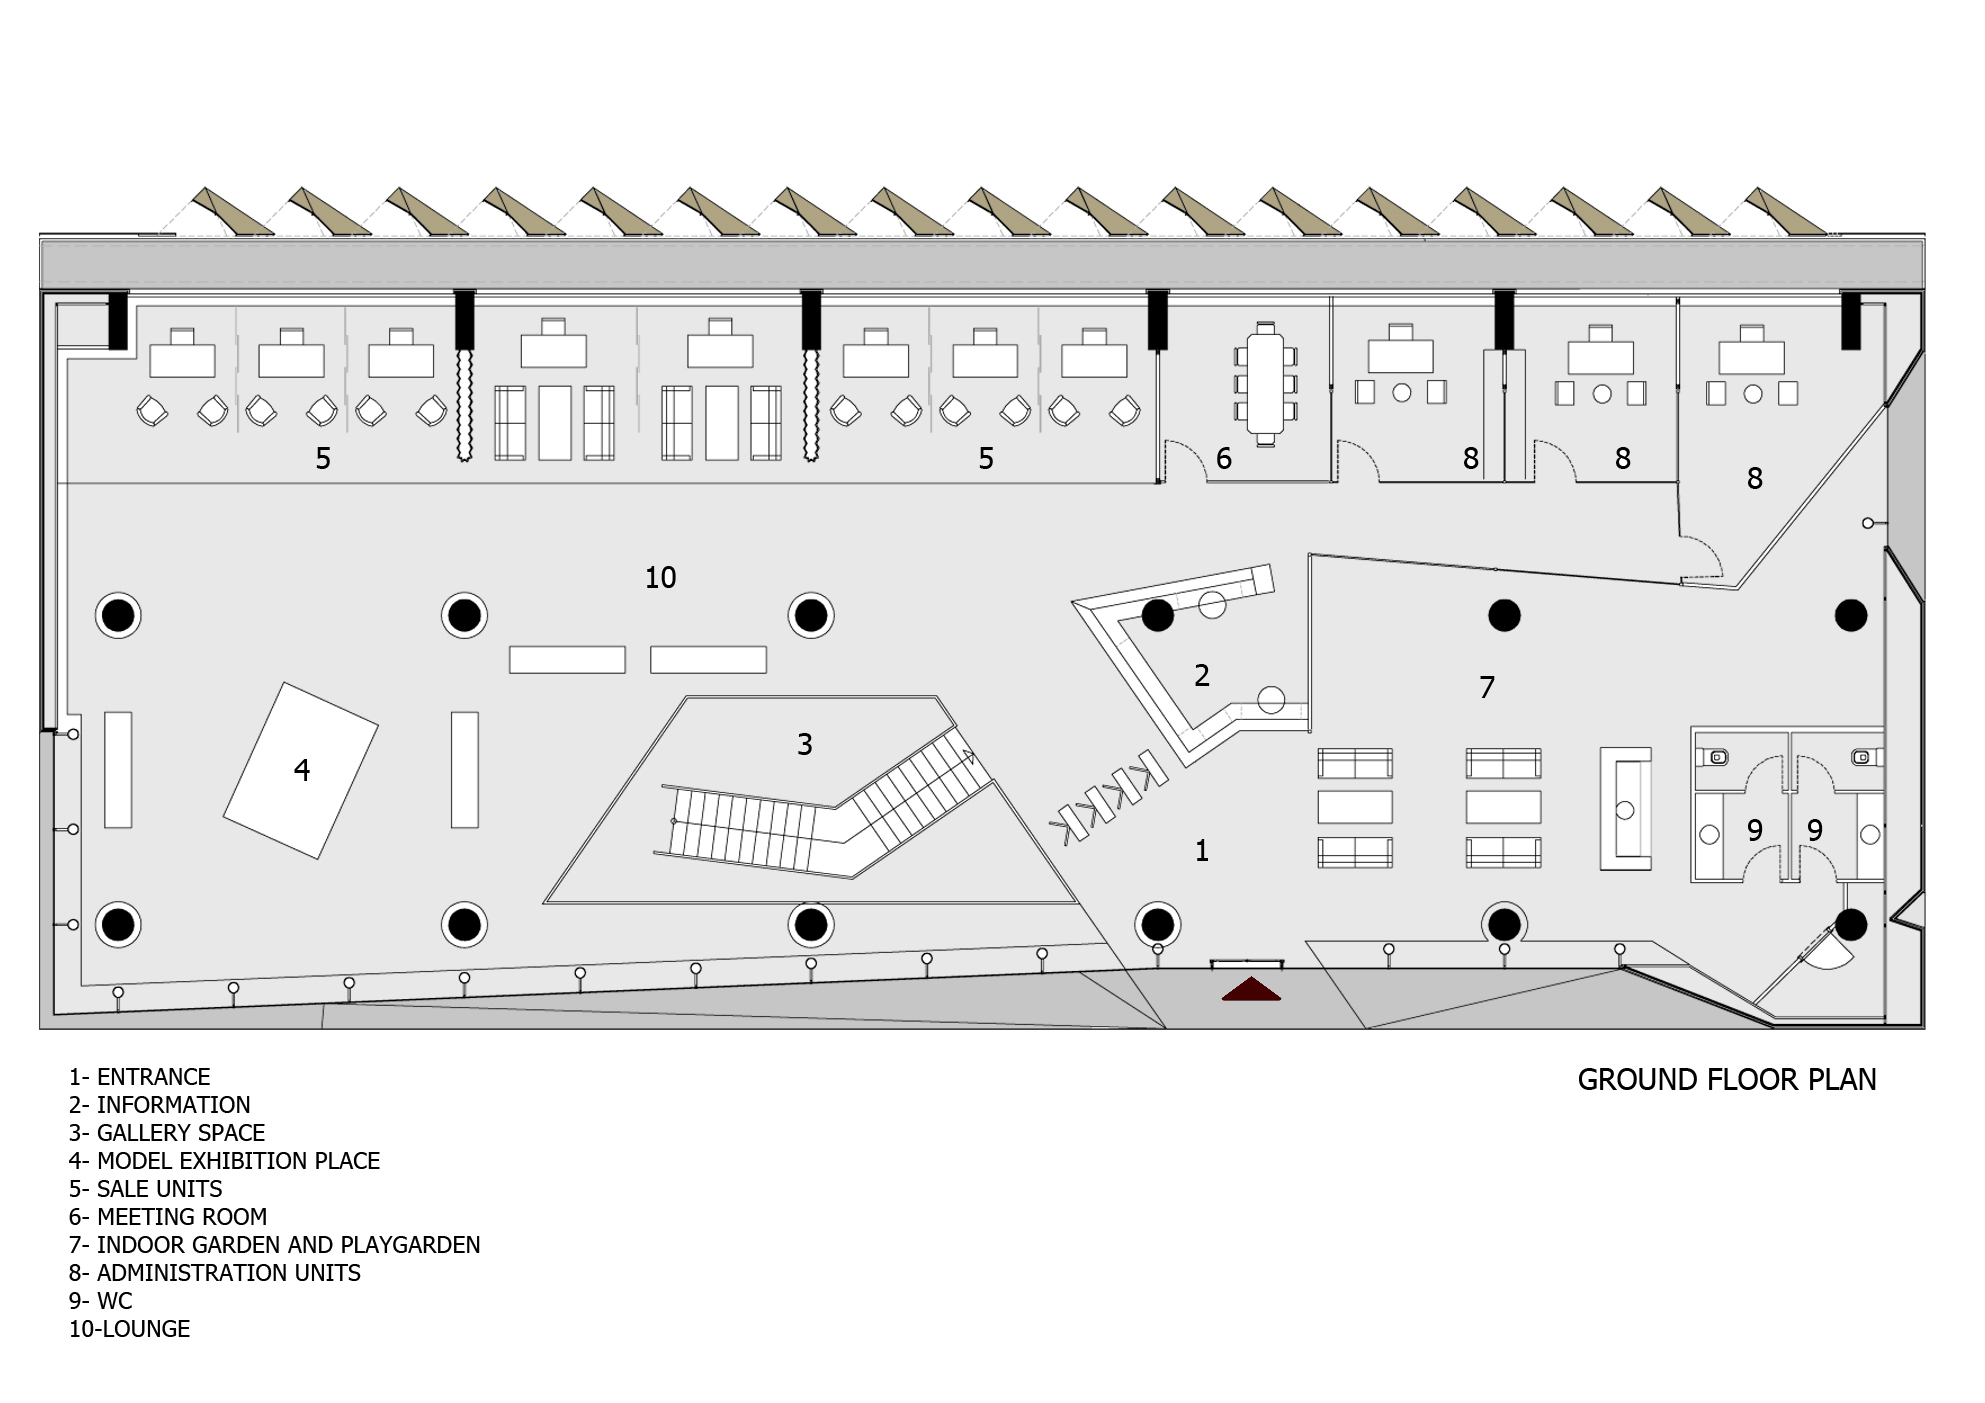 office building in istanbulground floor plan architect office names